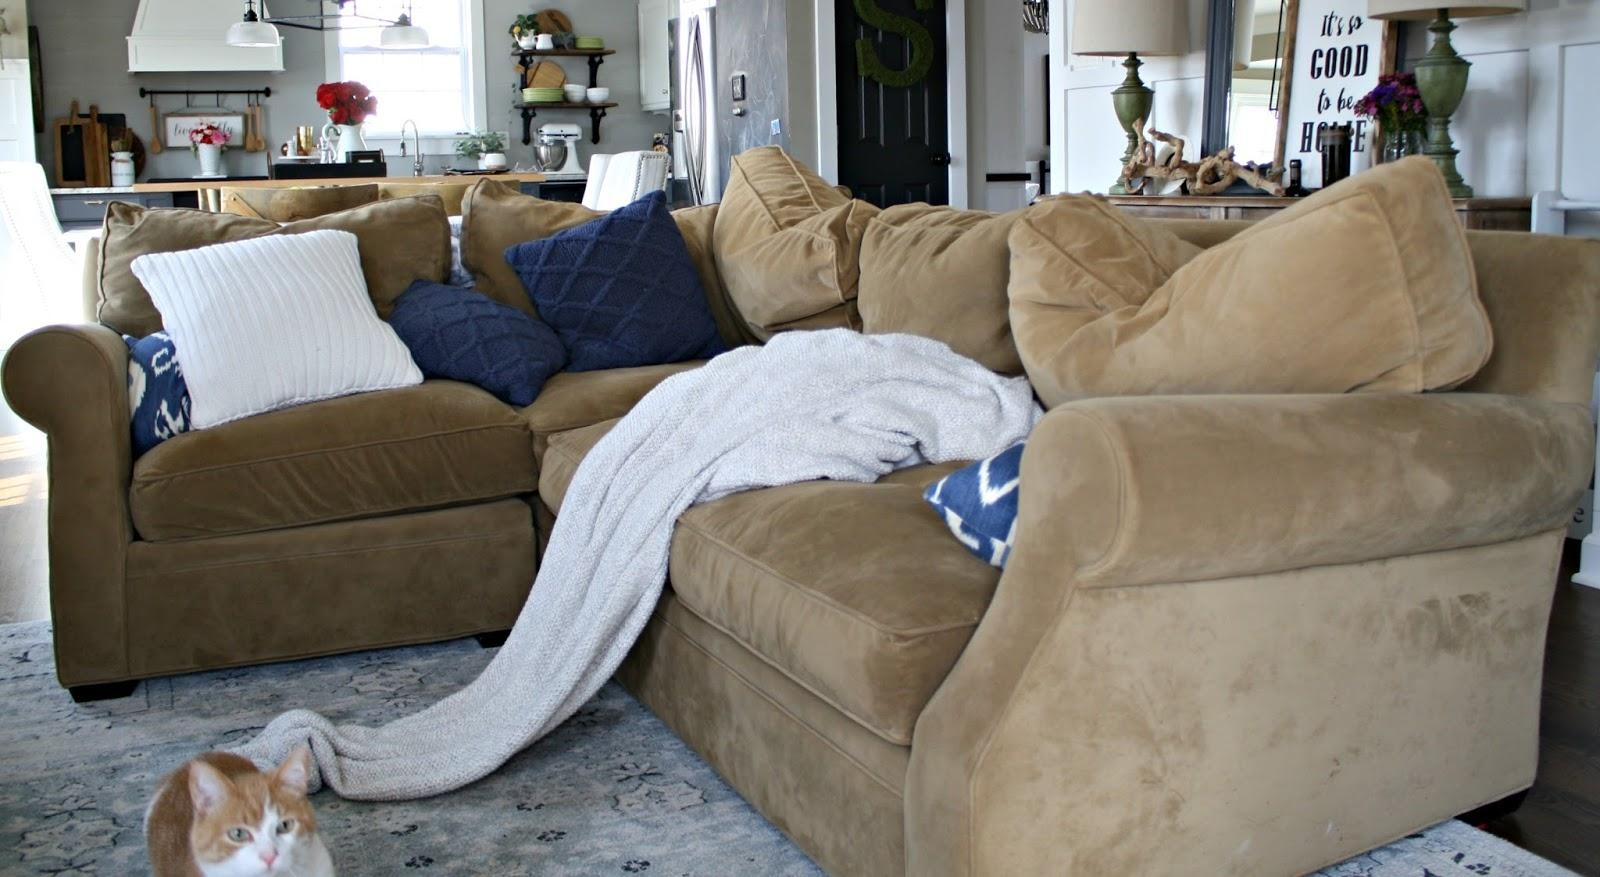 A Review Of Our Most Expensive Purchase! From Thrifty Decor Chick Inside Arhaus Slipcovers (Photo 9 of 20)